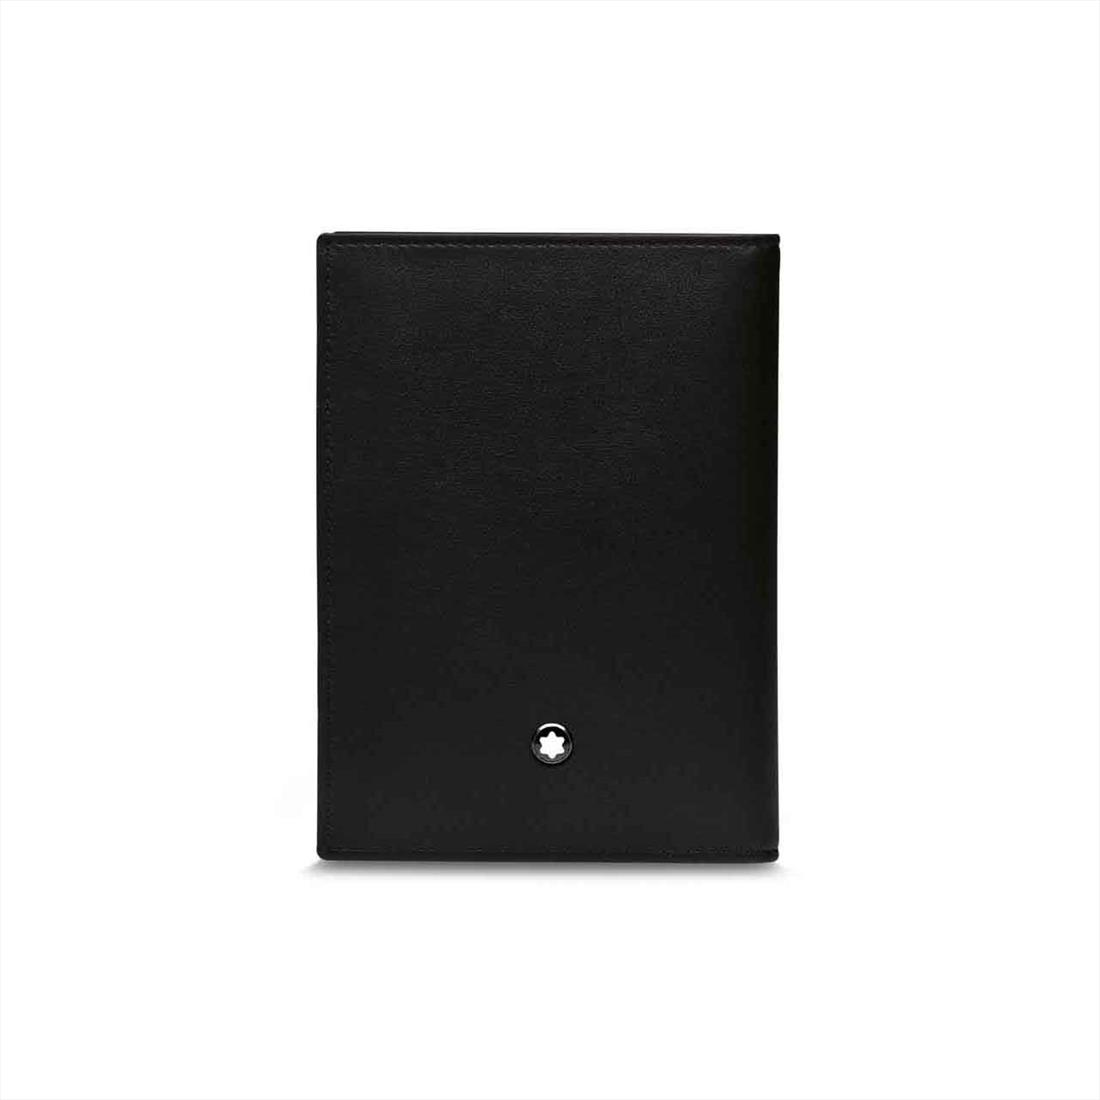 MONTBLANC FOR BMW PASSPORT COVER